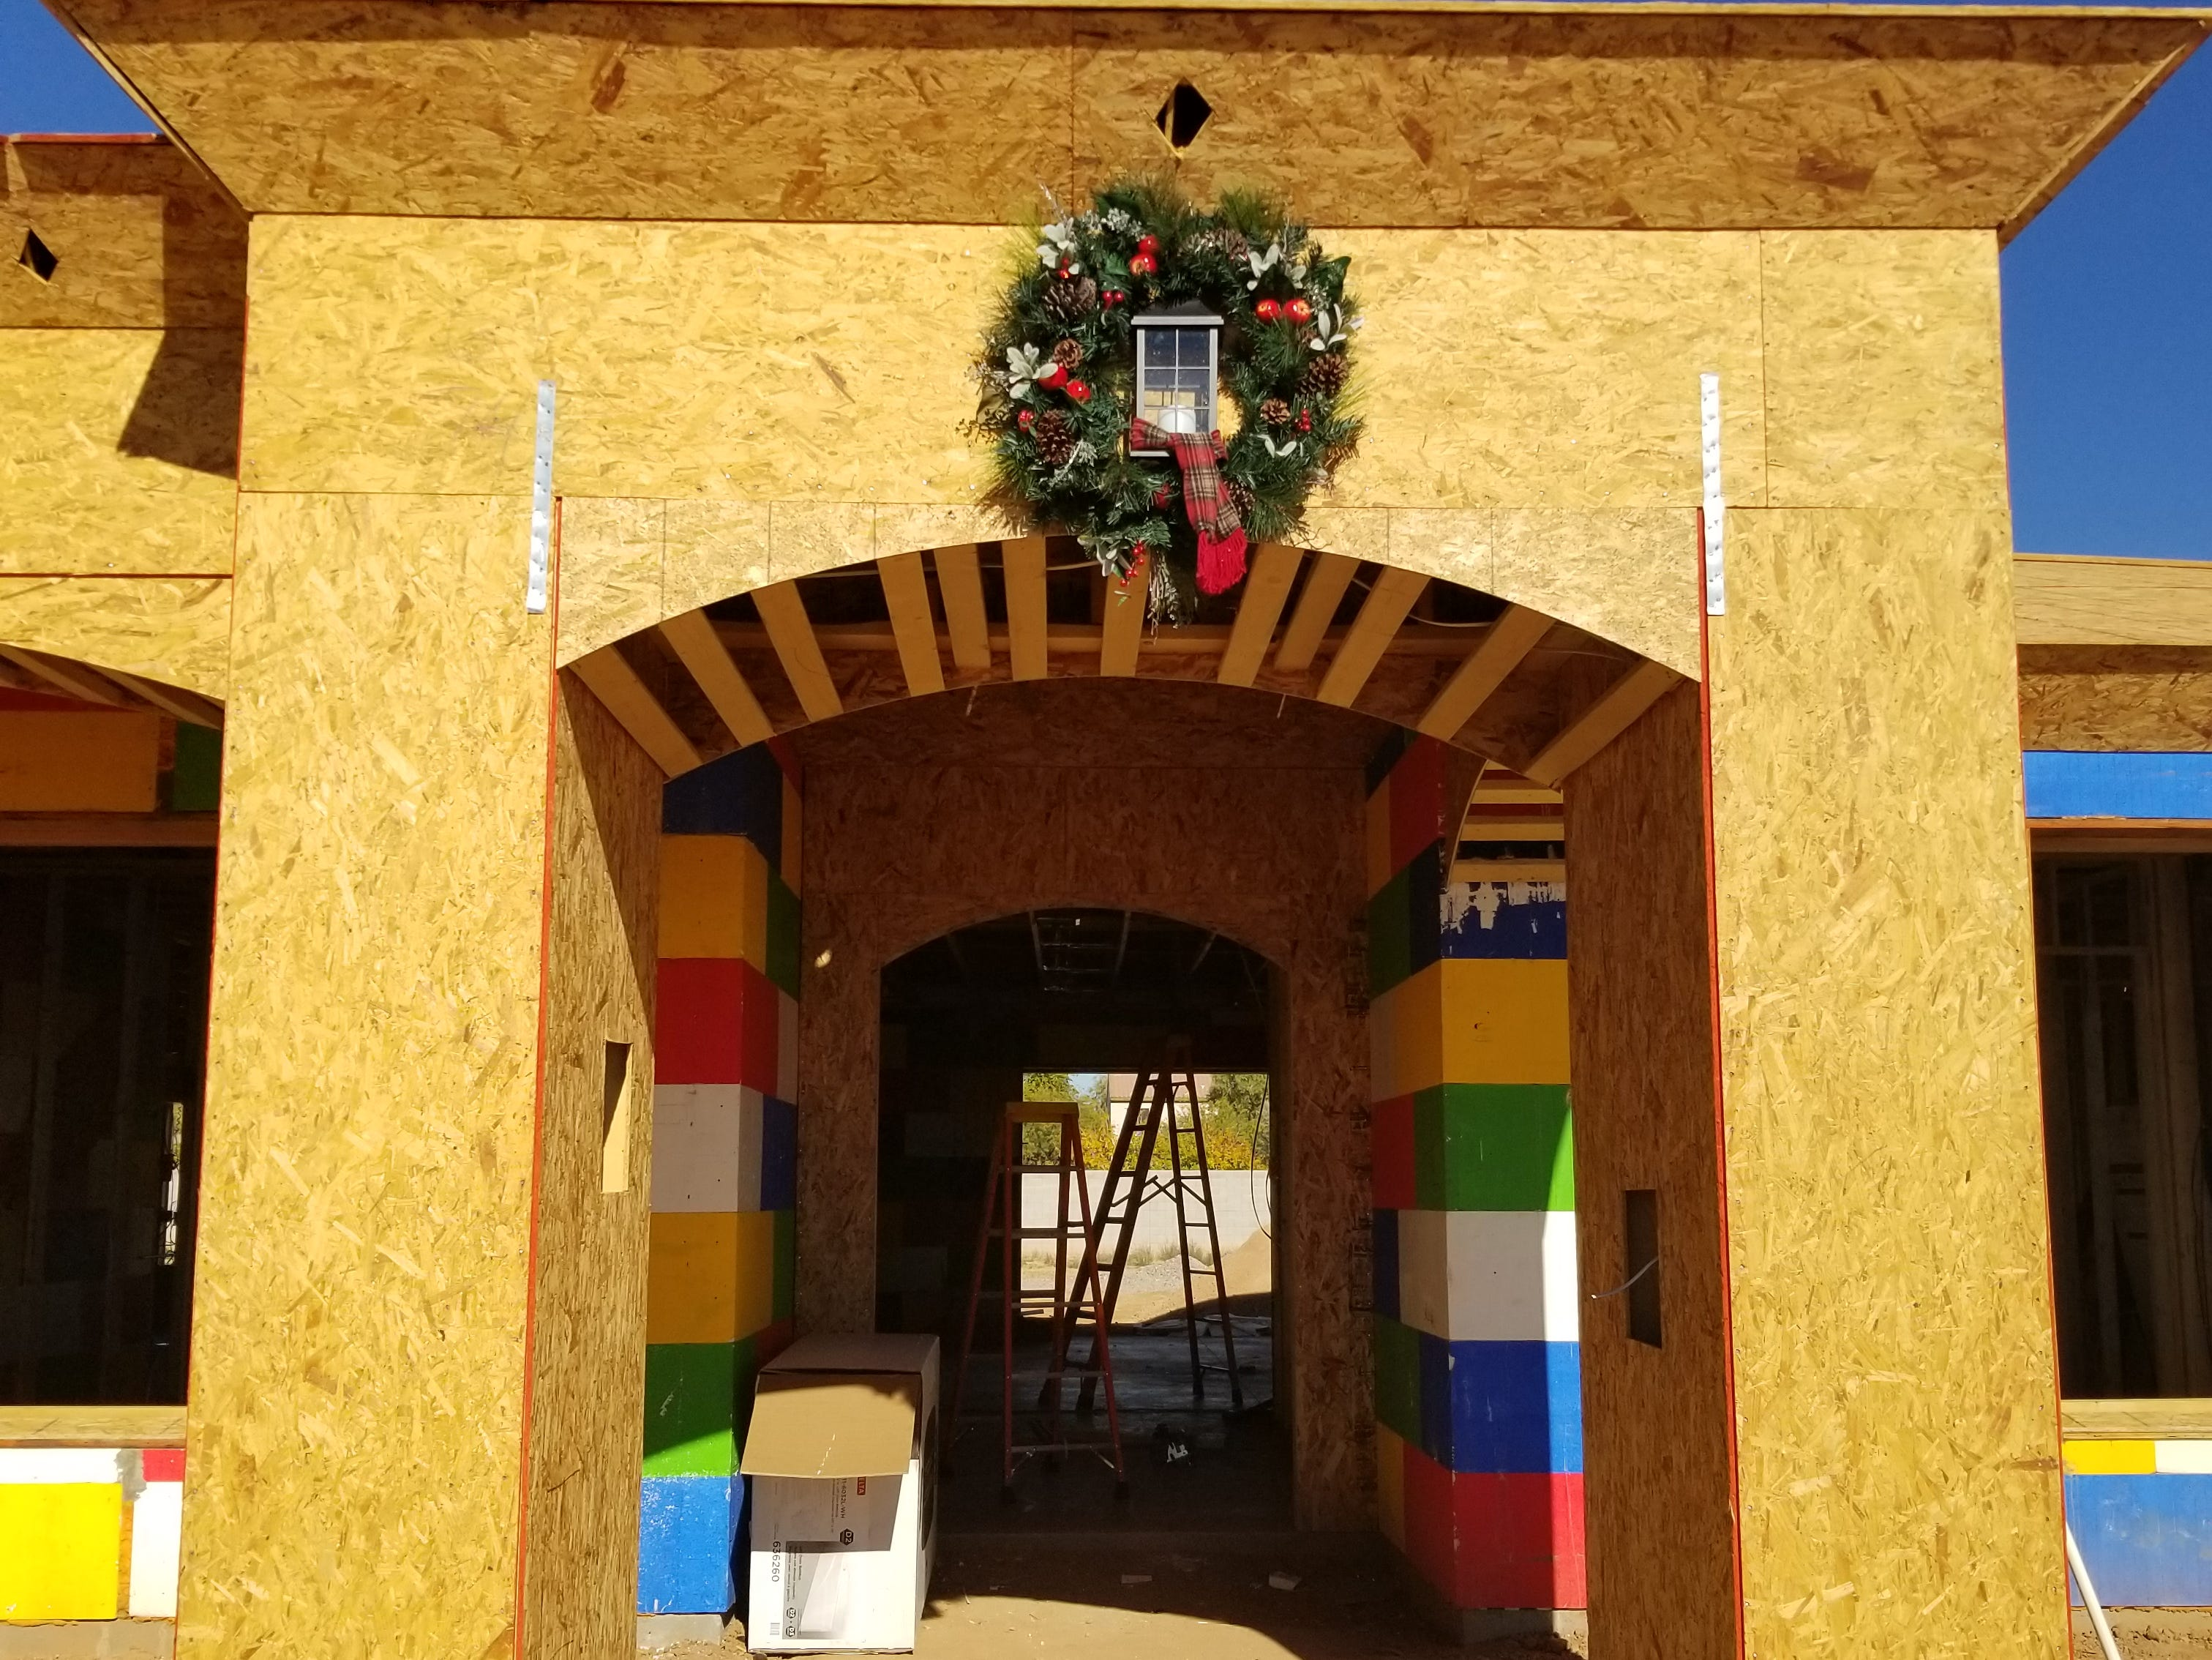 The home is partially framed out over insulating concrete forms, hollow foam blocks that can be stacked, reinforced with rebar and filled with concrete to form walls. A statuesque arched entrance sports a festive holiday wreath.